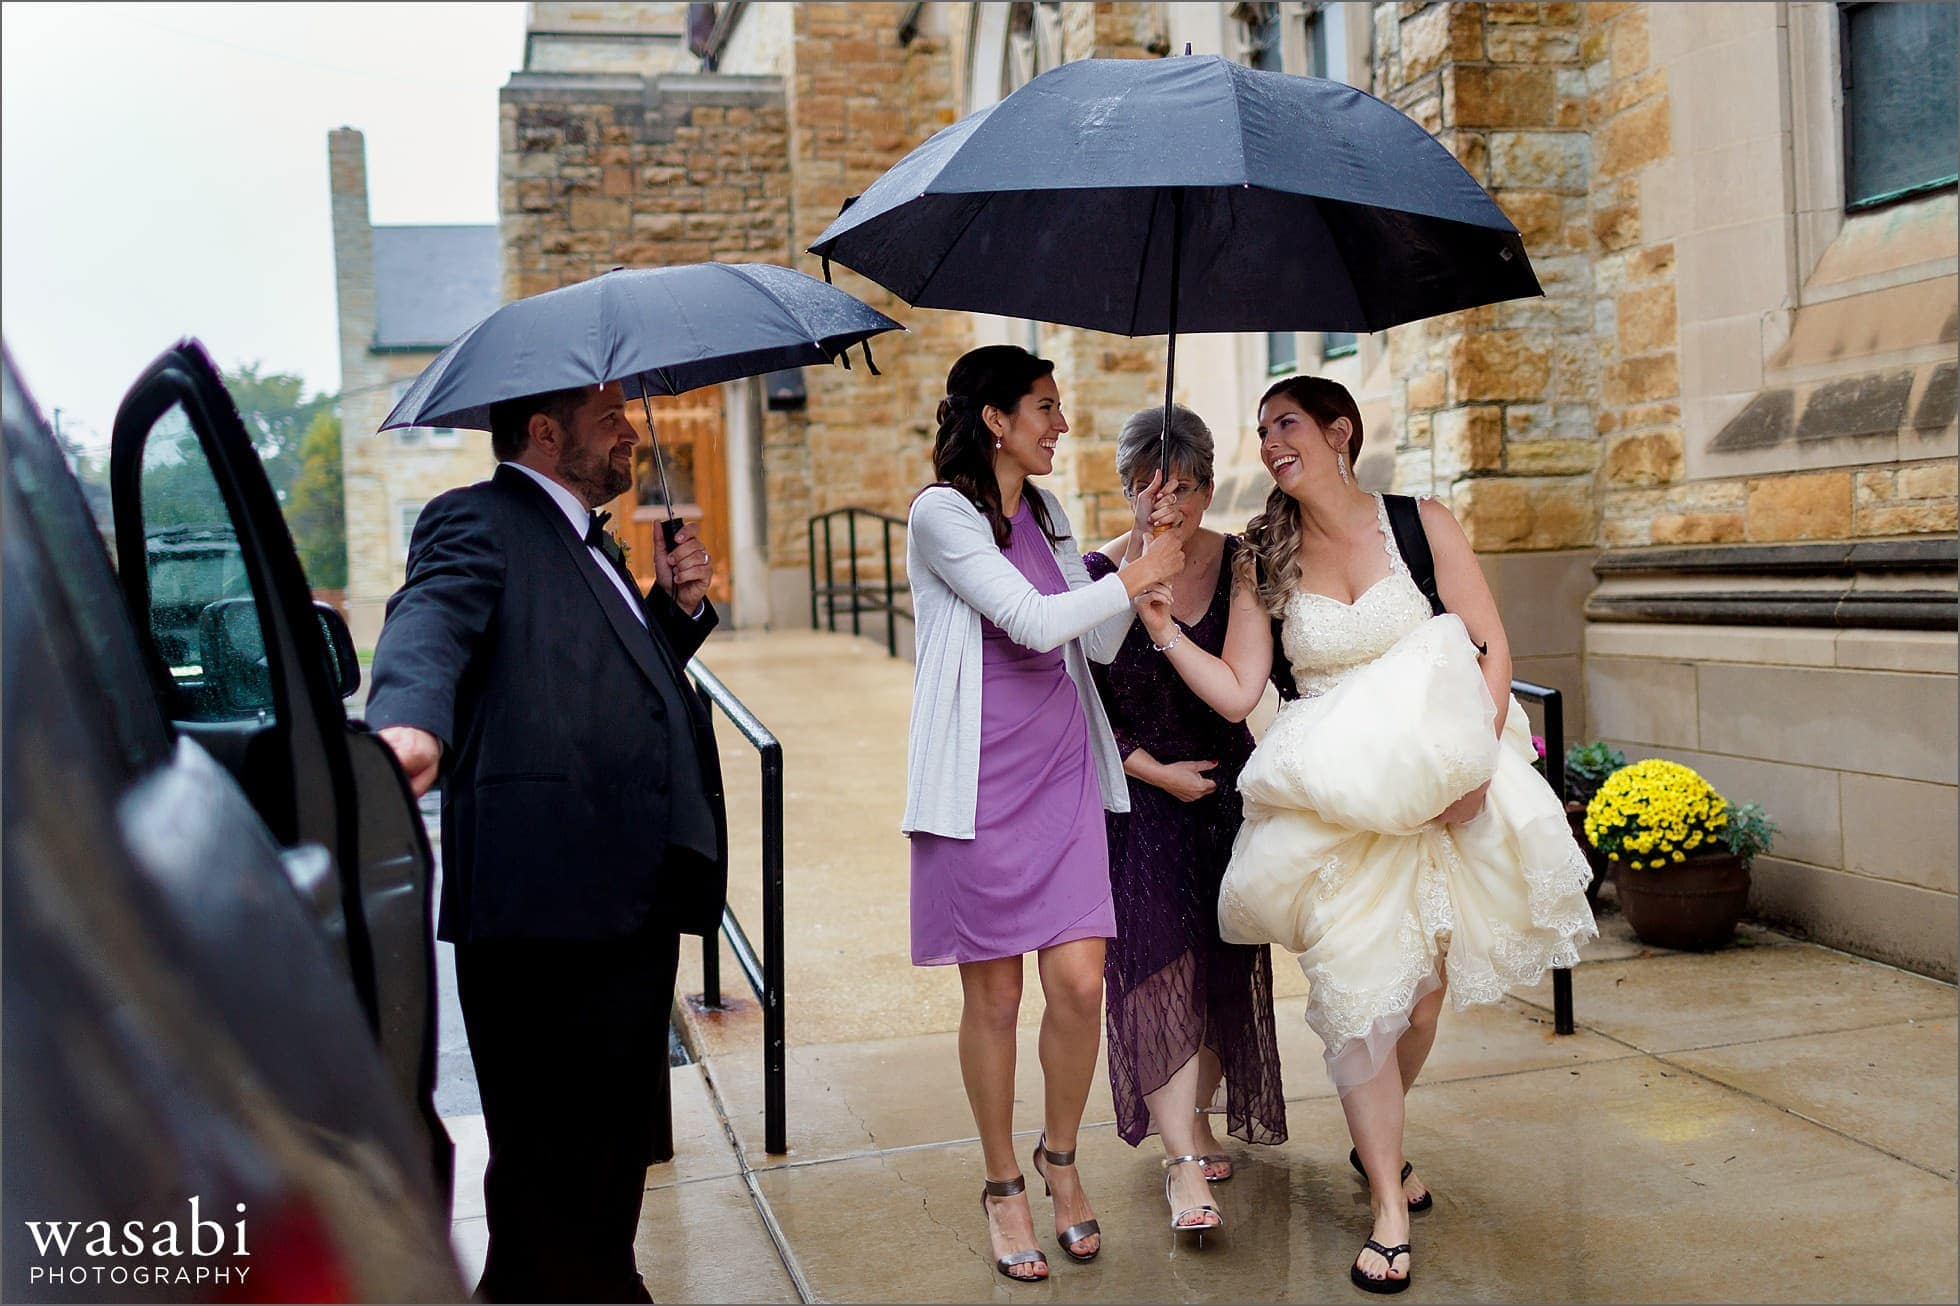 bride walks under umbrella to avoid rain while leaving ceremony at St Luke Roman Catholic Church in River Forest